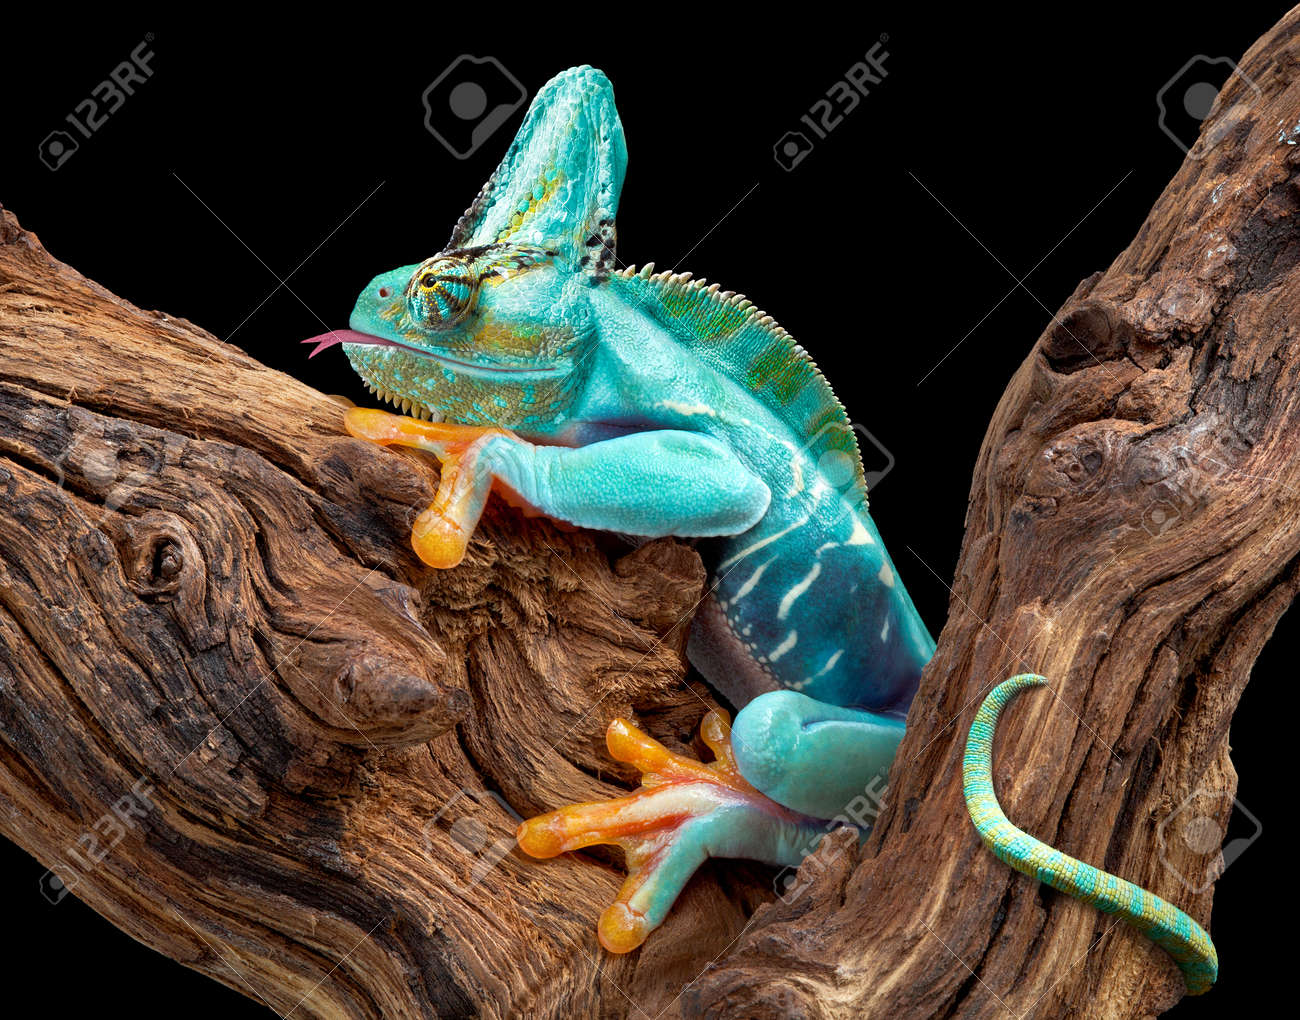 A creature appears to be part frog and part chameleon. Stock Photo - 12323876